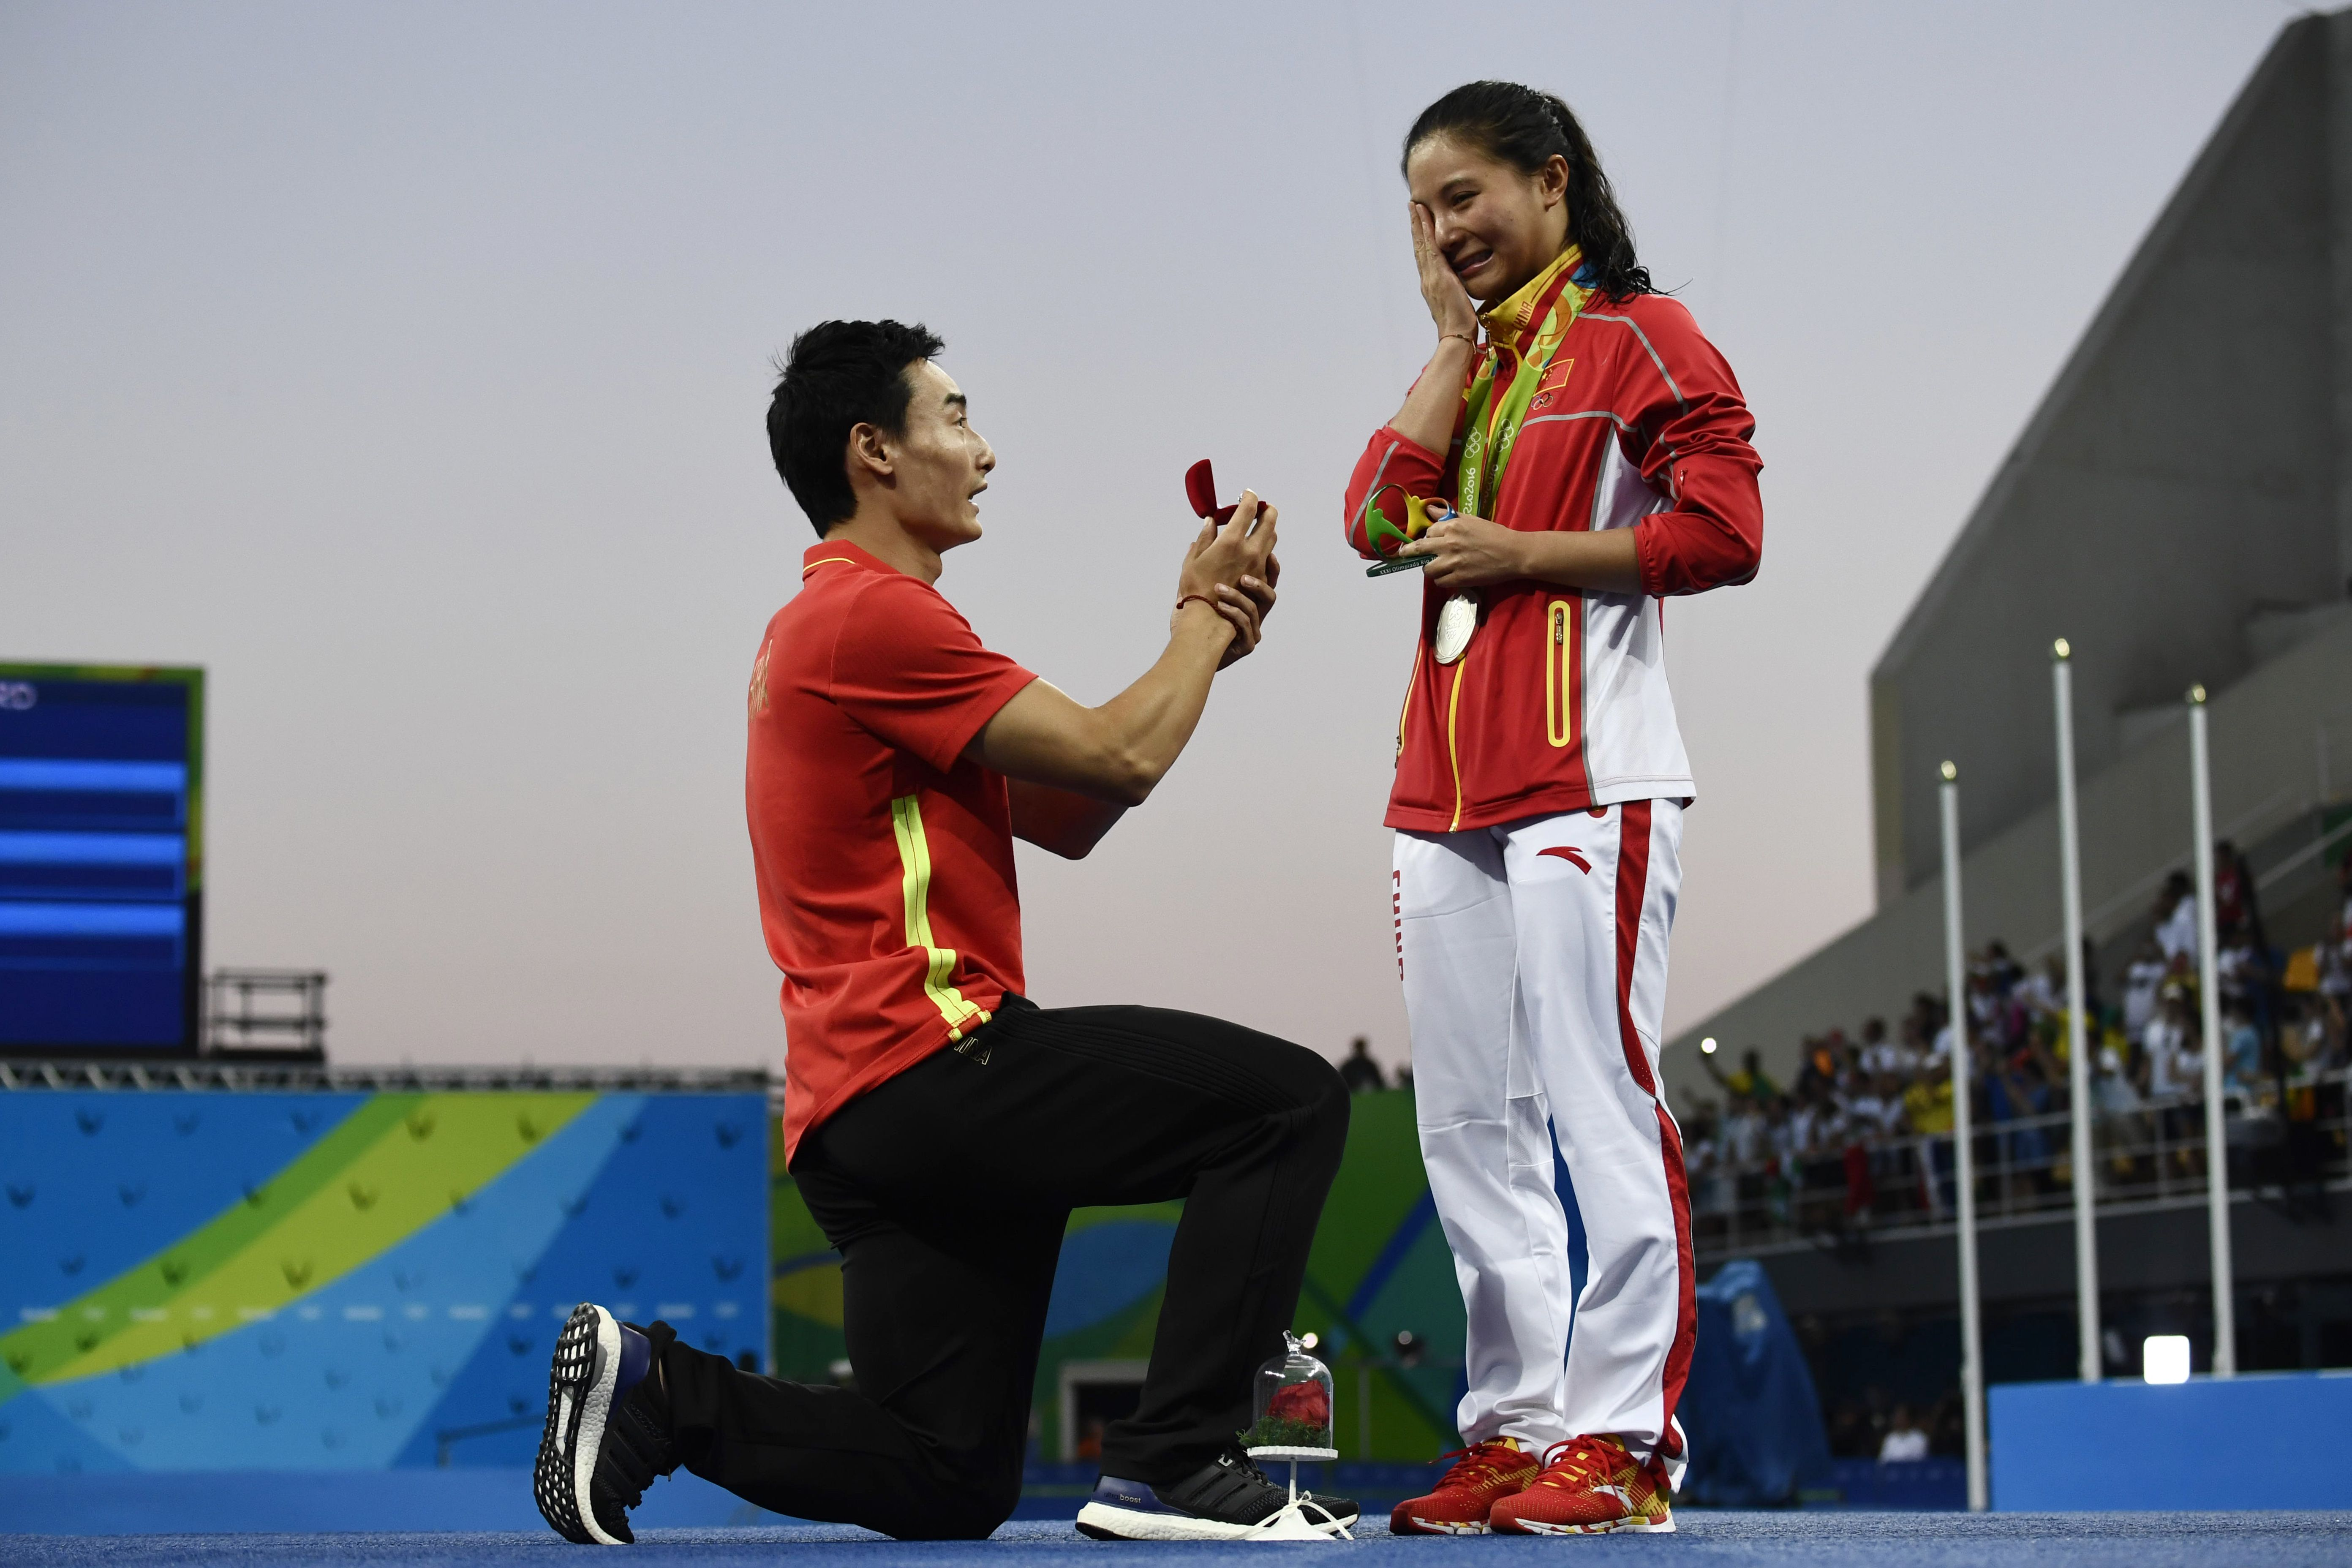 China's silver medalist He Zi, right, receives a marriage proposal from bronze medalist and fellow Chinese diver Qin Kai during the podium ceremony of the women's diving 3-m springboard final in Rio de Jainero on Aug. 14, 2016